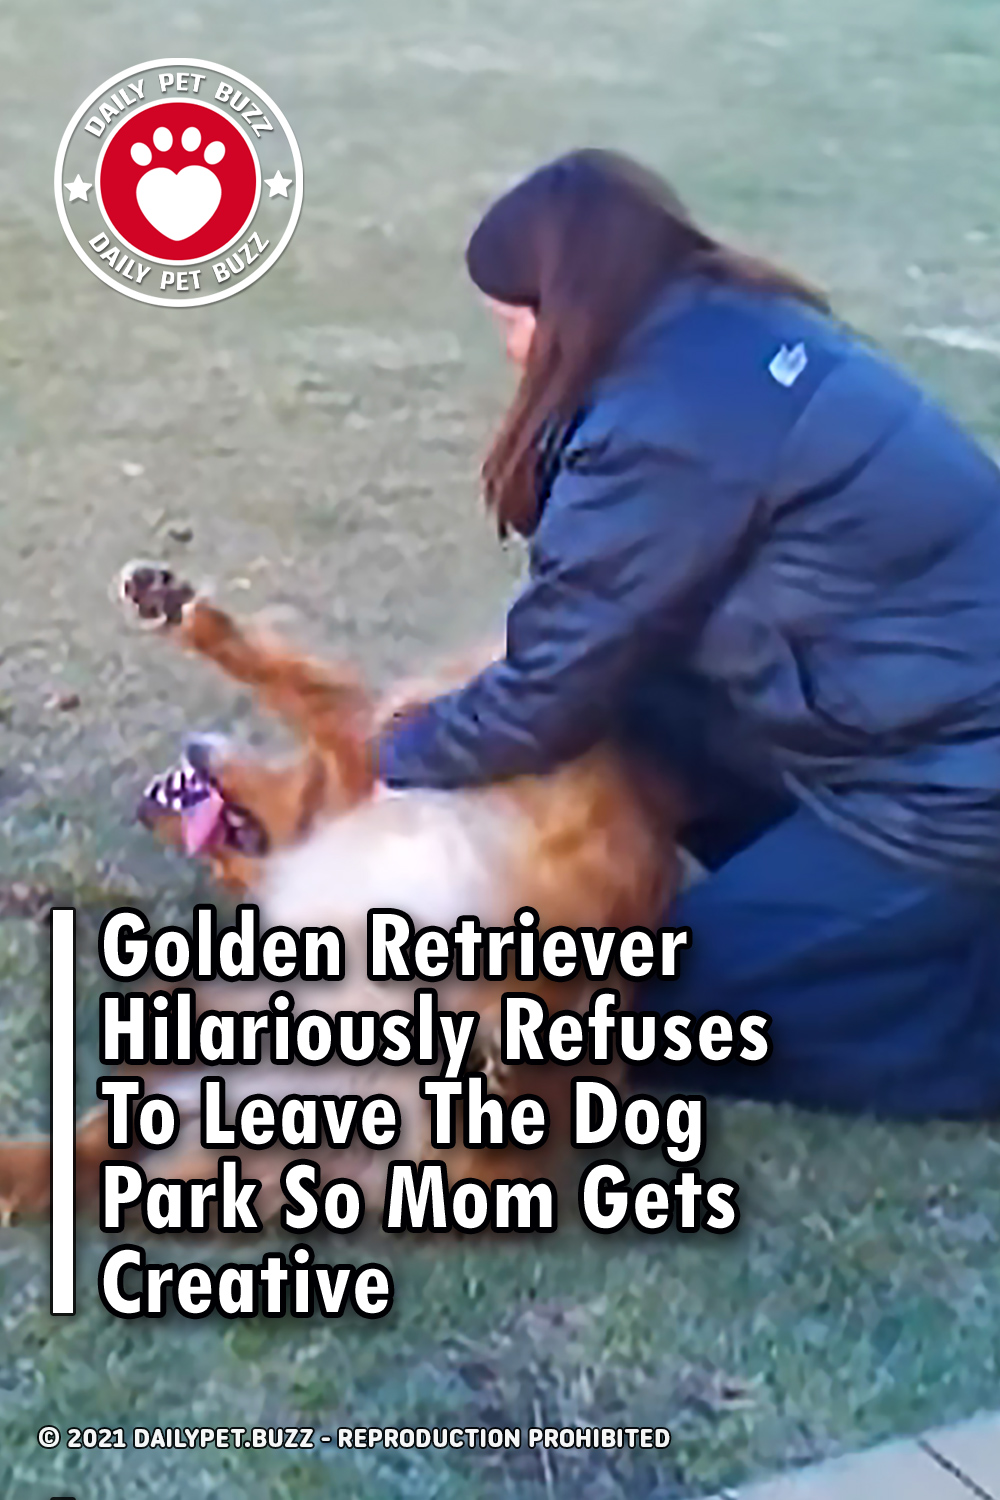 Golden Retriever Hilariously Refuses To Leave The Dog Park So Mom Gets Creative